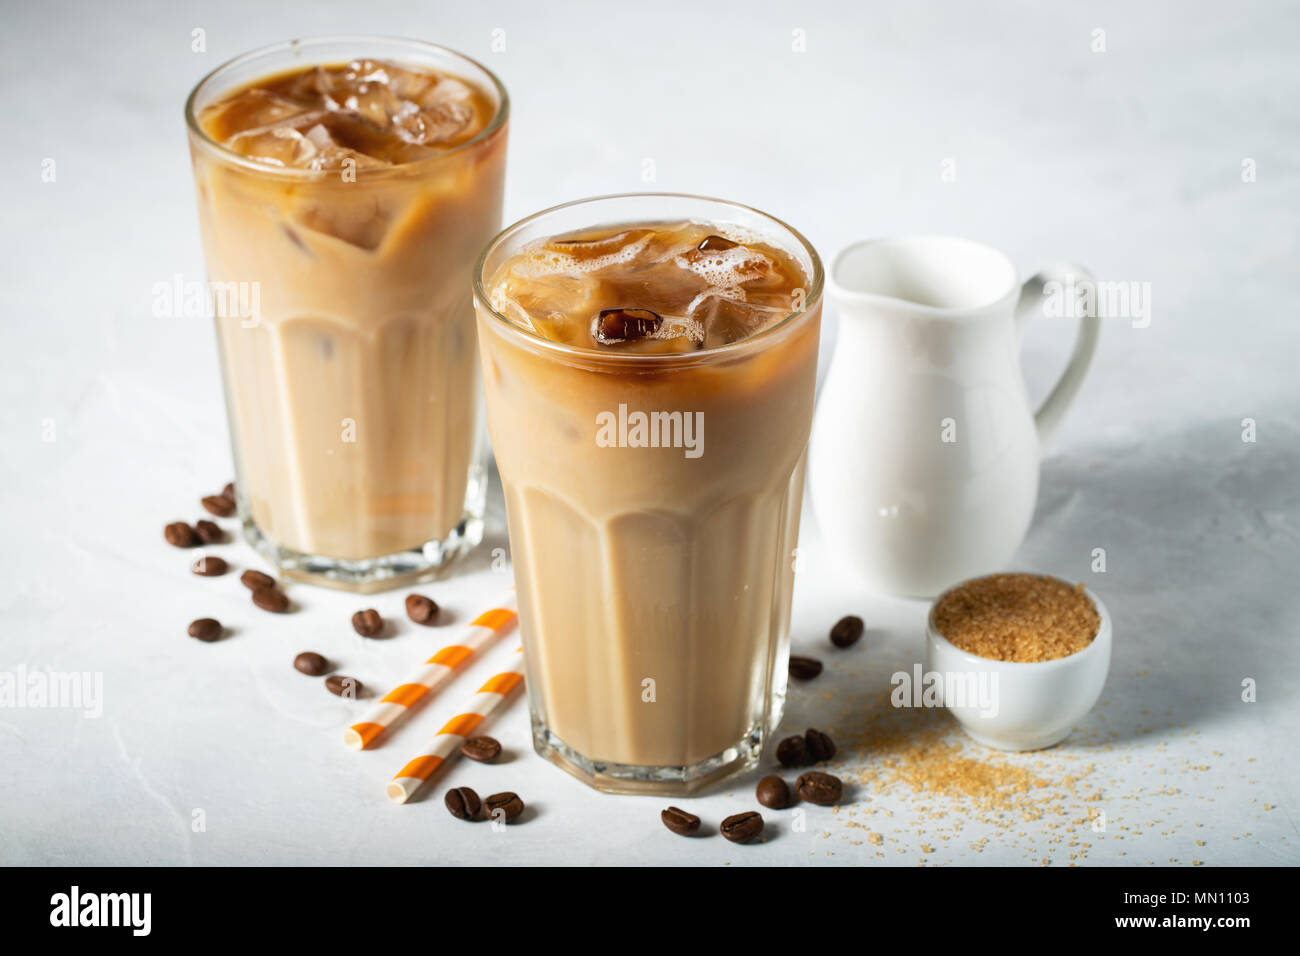 Ice coffee in a tall glass with cream poured over and coffee beans. Cold summer drink on a light blue background - Stock Image